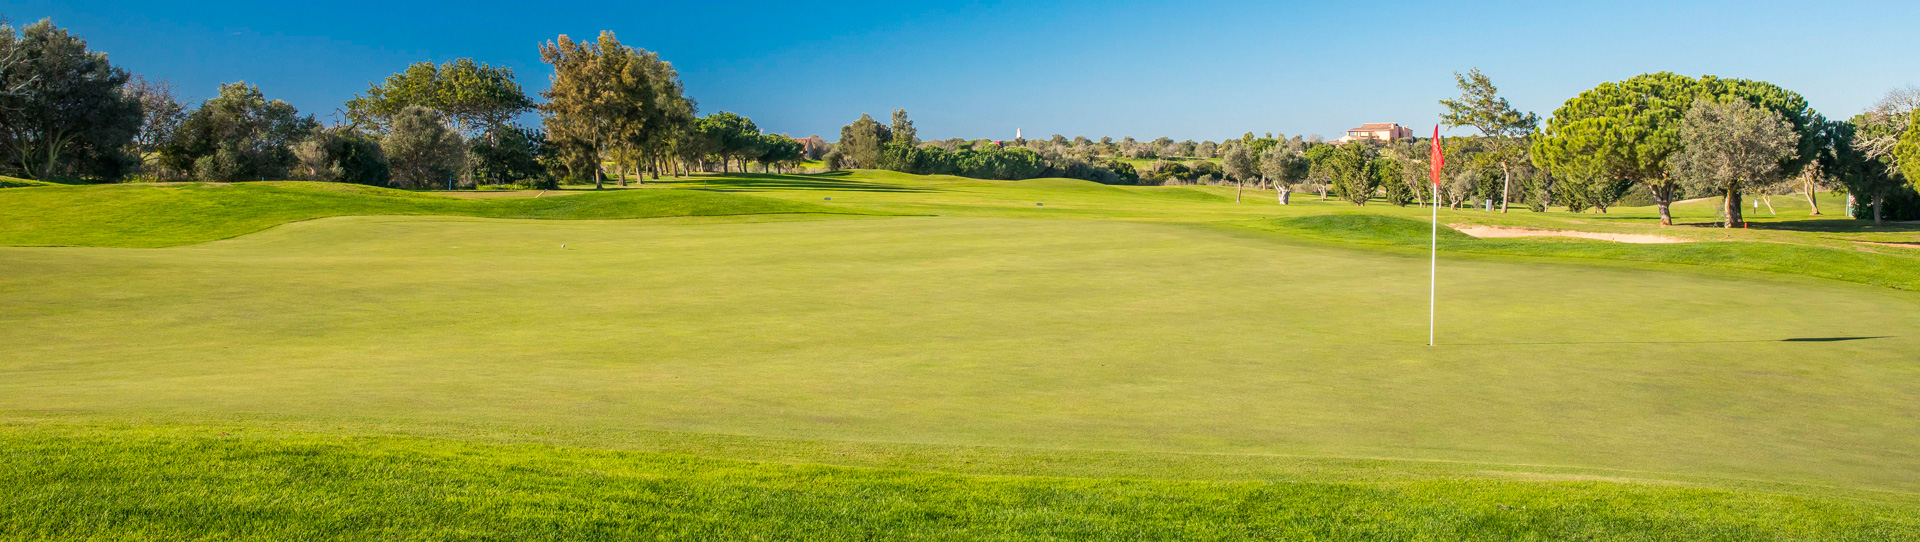 Boavista Golf Course - Photo 2